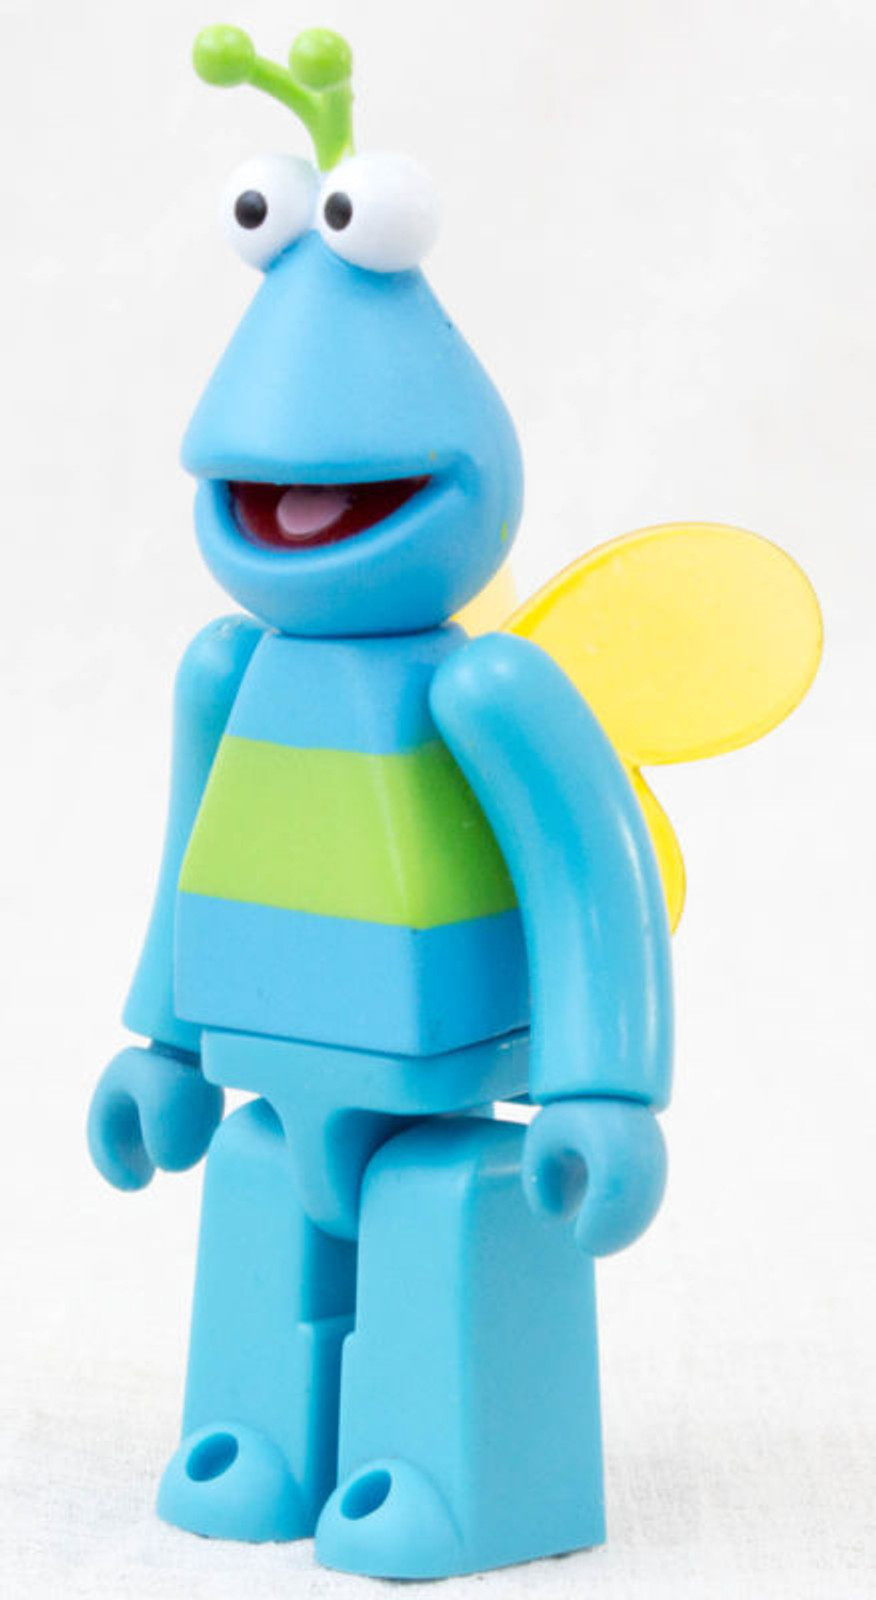 Sesame Street Kubrick Series 2 Secret Twiddle Bug Medicom Toy JAPAN FIGURE